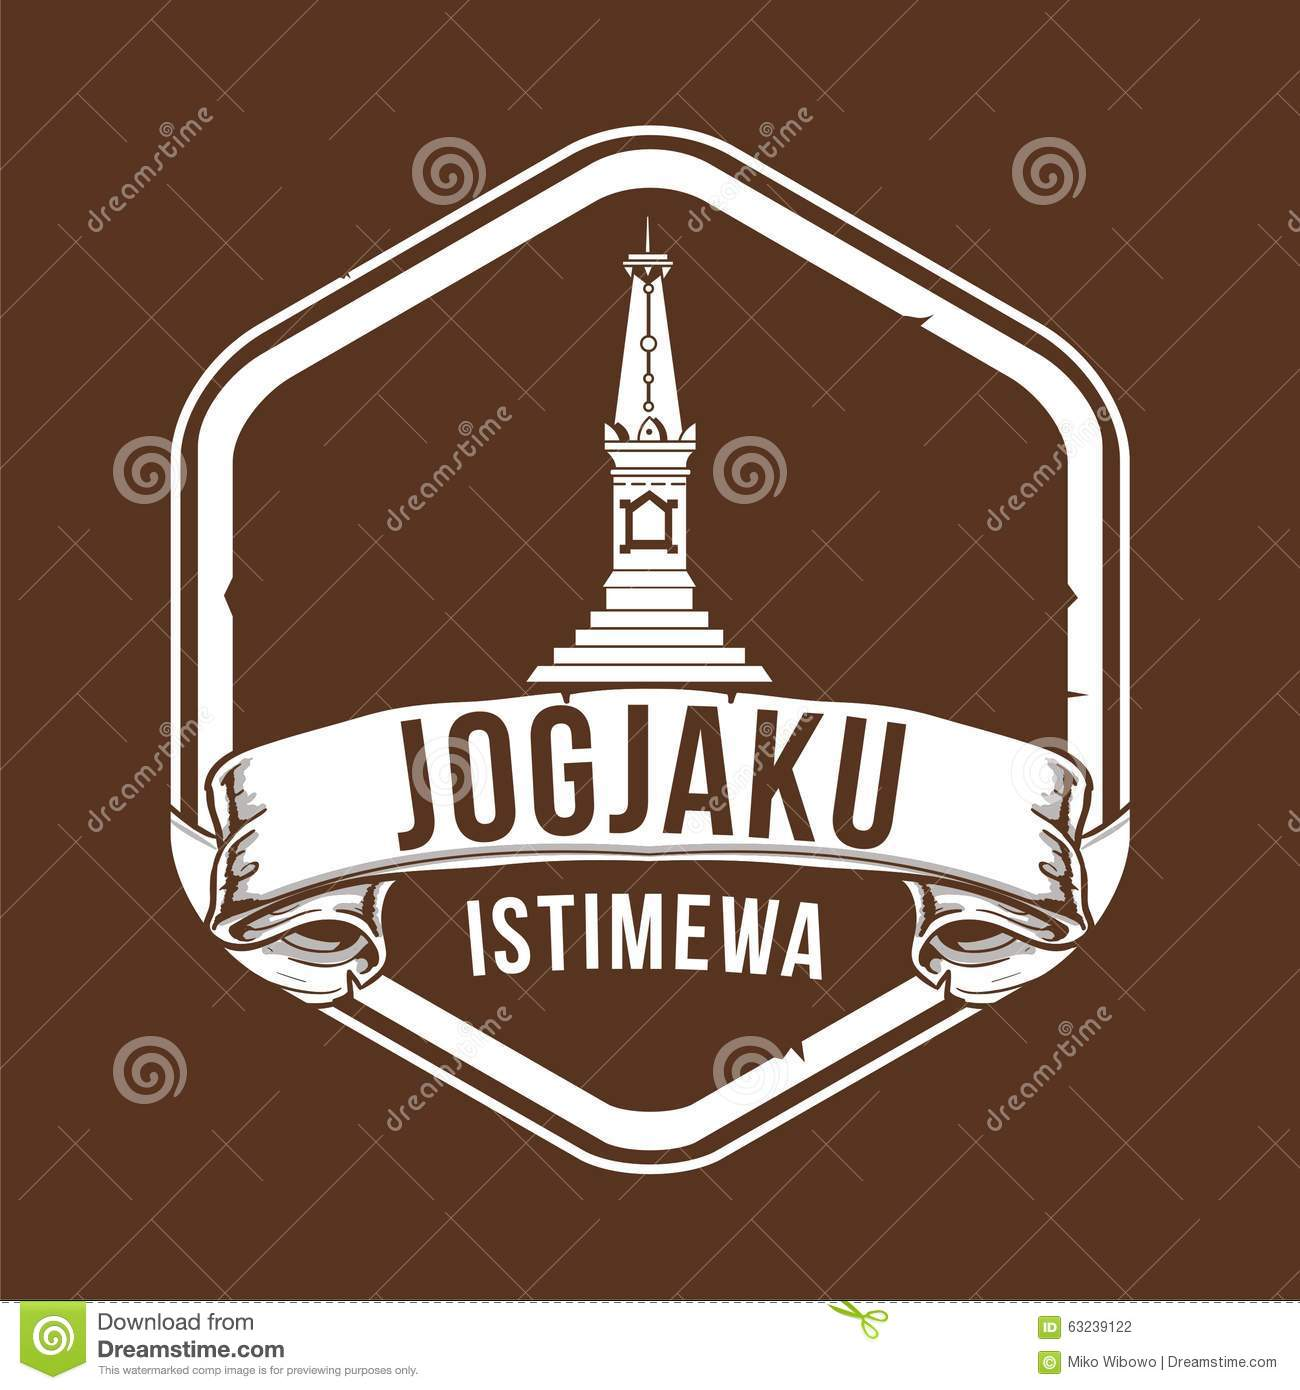 Jogja Stock Illustrations – 147 Jogja Stock Illustrations